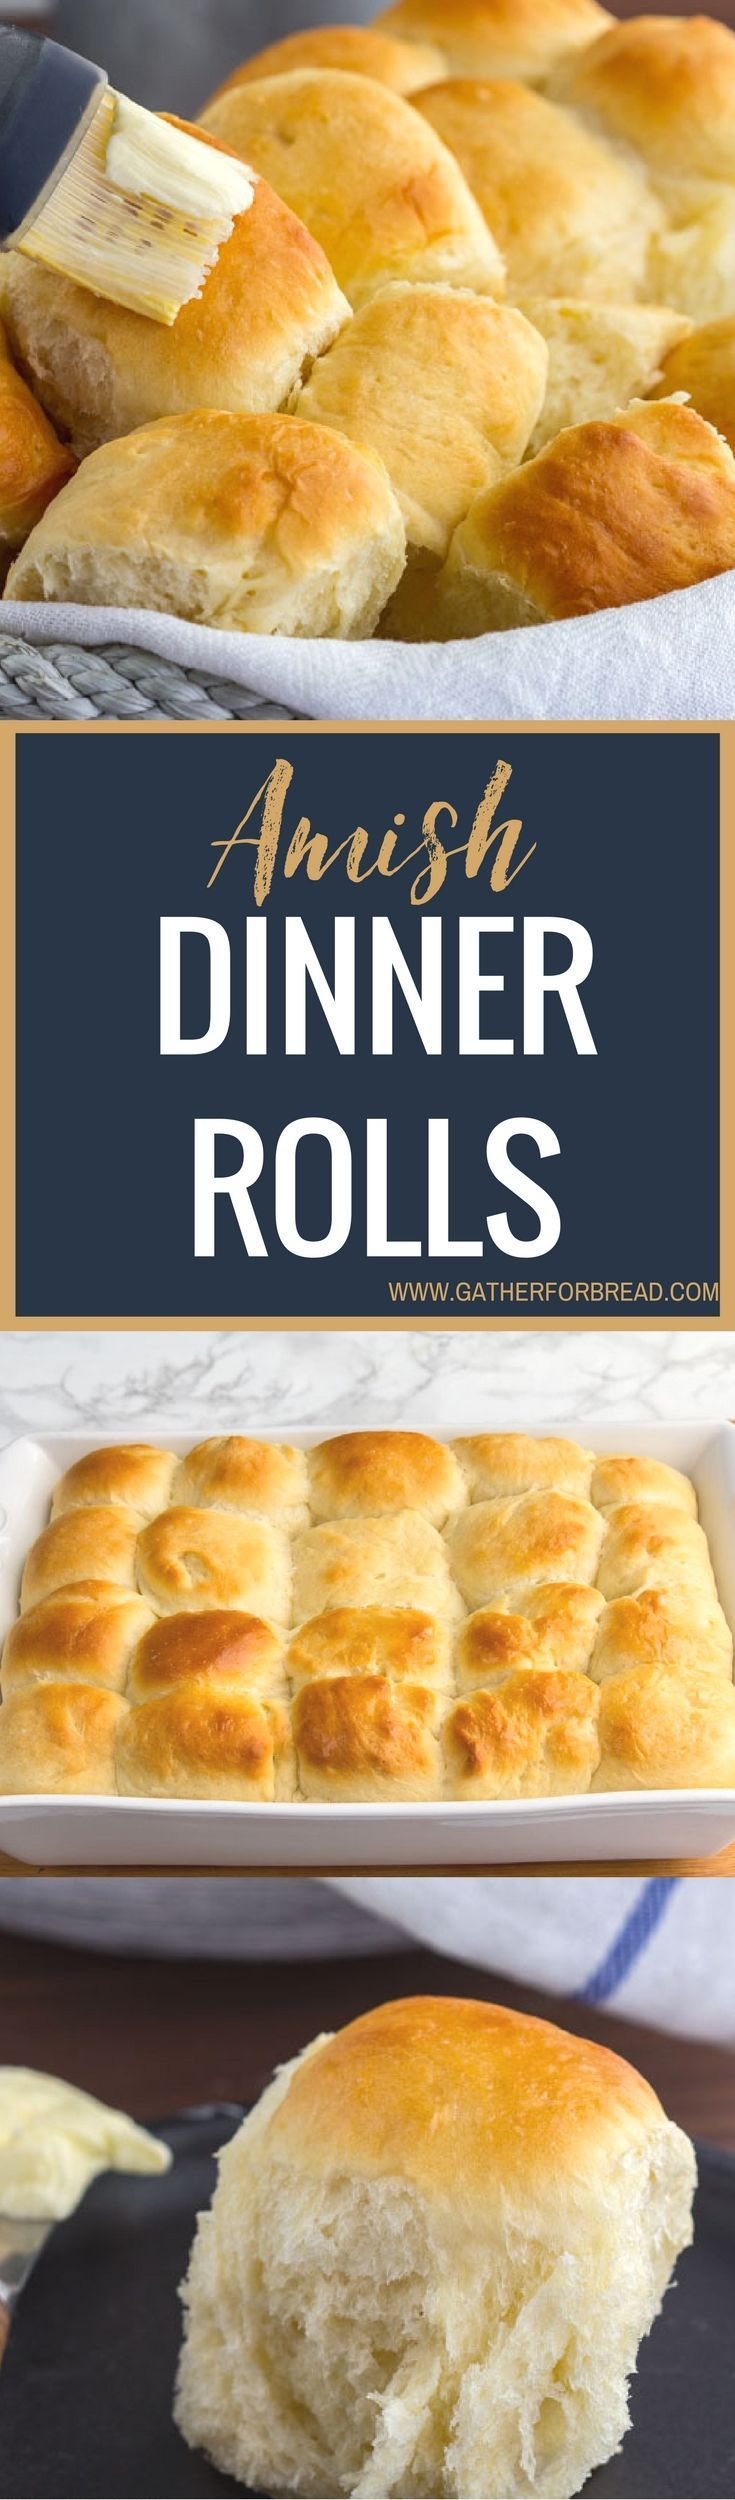 Amish Dinner Rolls - Soft Yeast rolls recipe for warm fluffy buns. Made with instant mashed potato flakes, best served with any dinner comfort food. Adapted from an old Amish cookbook. (Best Pie Mashed Potatoes)